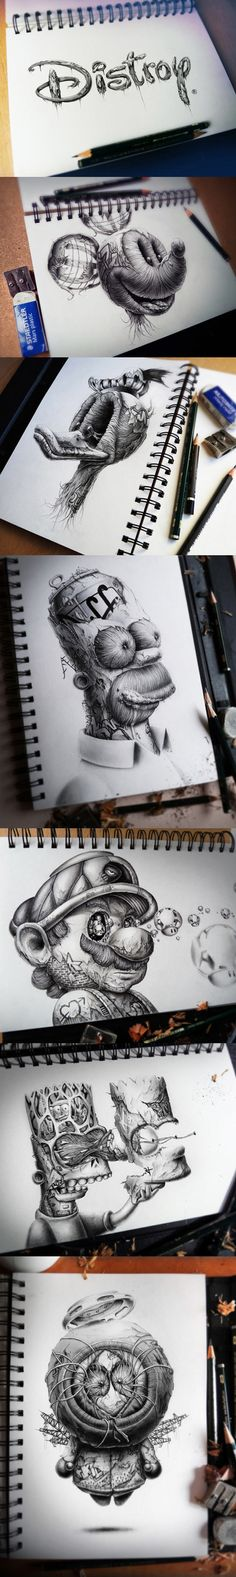 Distroy by PEZ // funny pictures - funny photos - funny images - funny pics - funny quotes - (Cool Art Drawings) Amazing Drawings, Cool Drawings, Amazing Art, Creepy Drawings, Awesome, Digital Art Illustration, Graphisches Design, Pencil Art, Pencil Shading